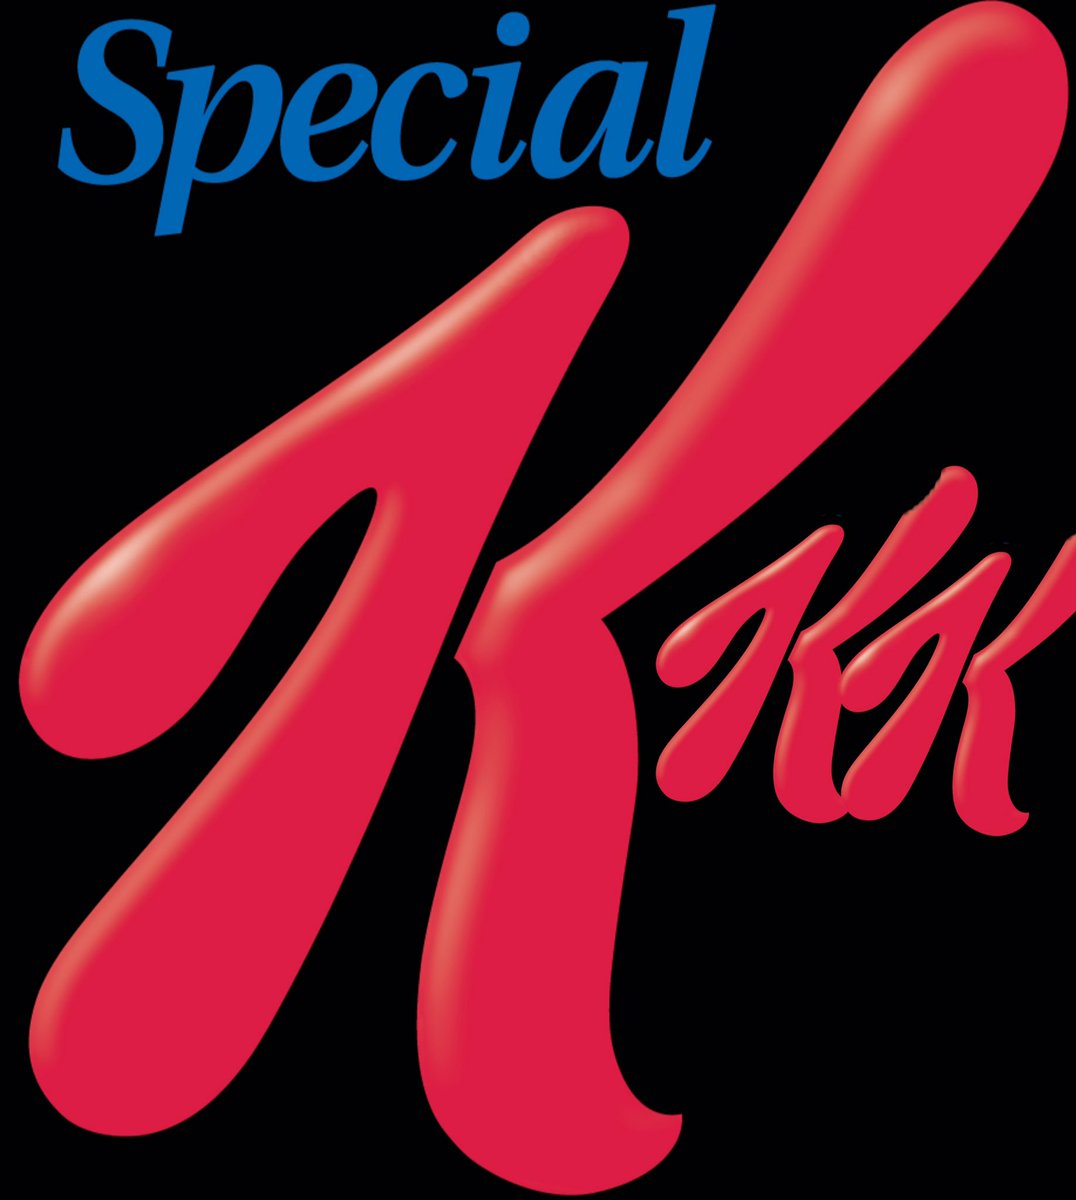 Special KKK: Start Your Day Alt-Right  #BreitbartCereals https://t.co/1ItBv4ibCu